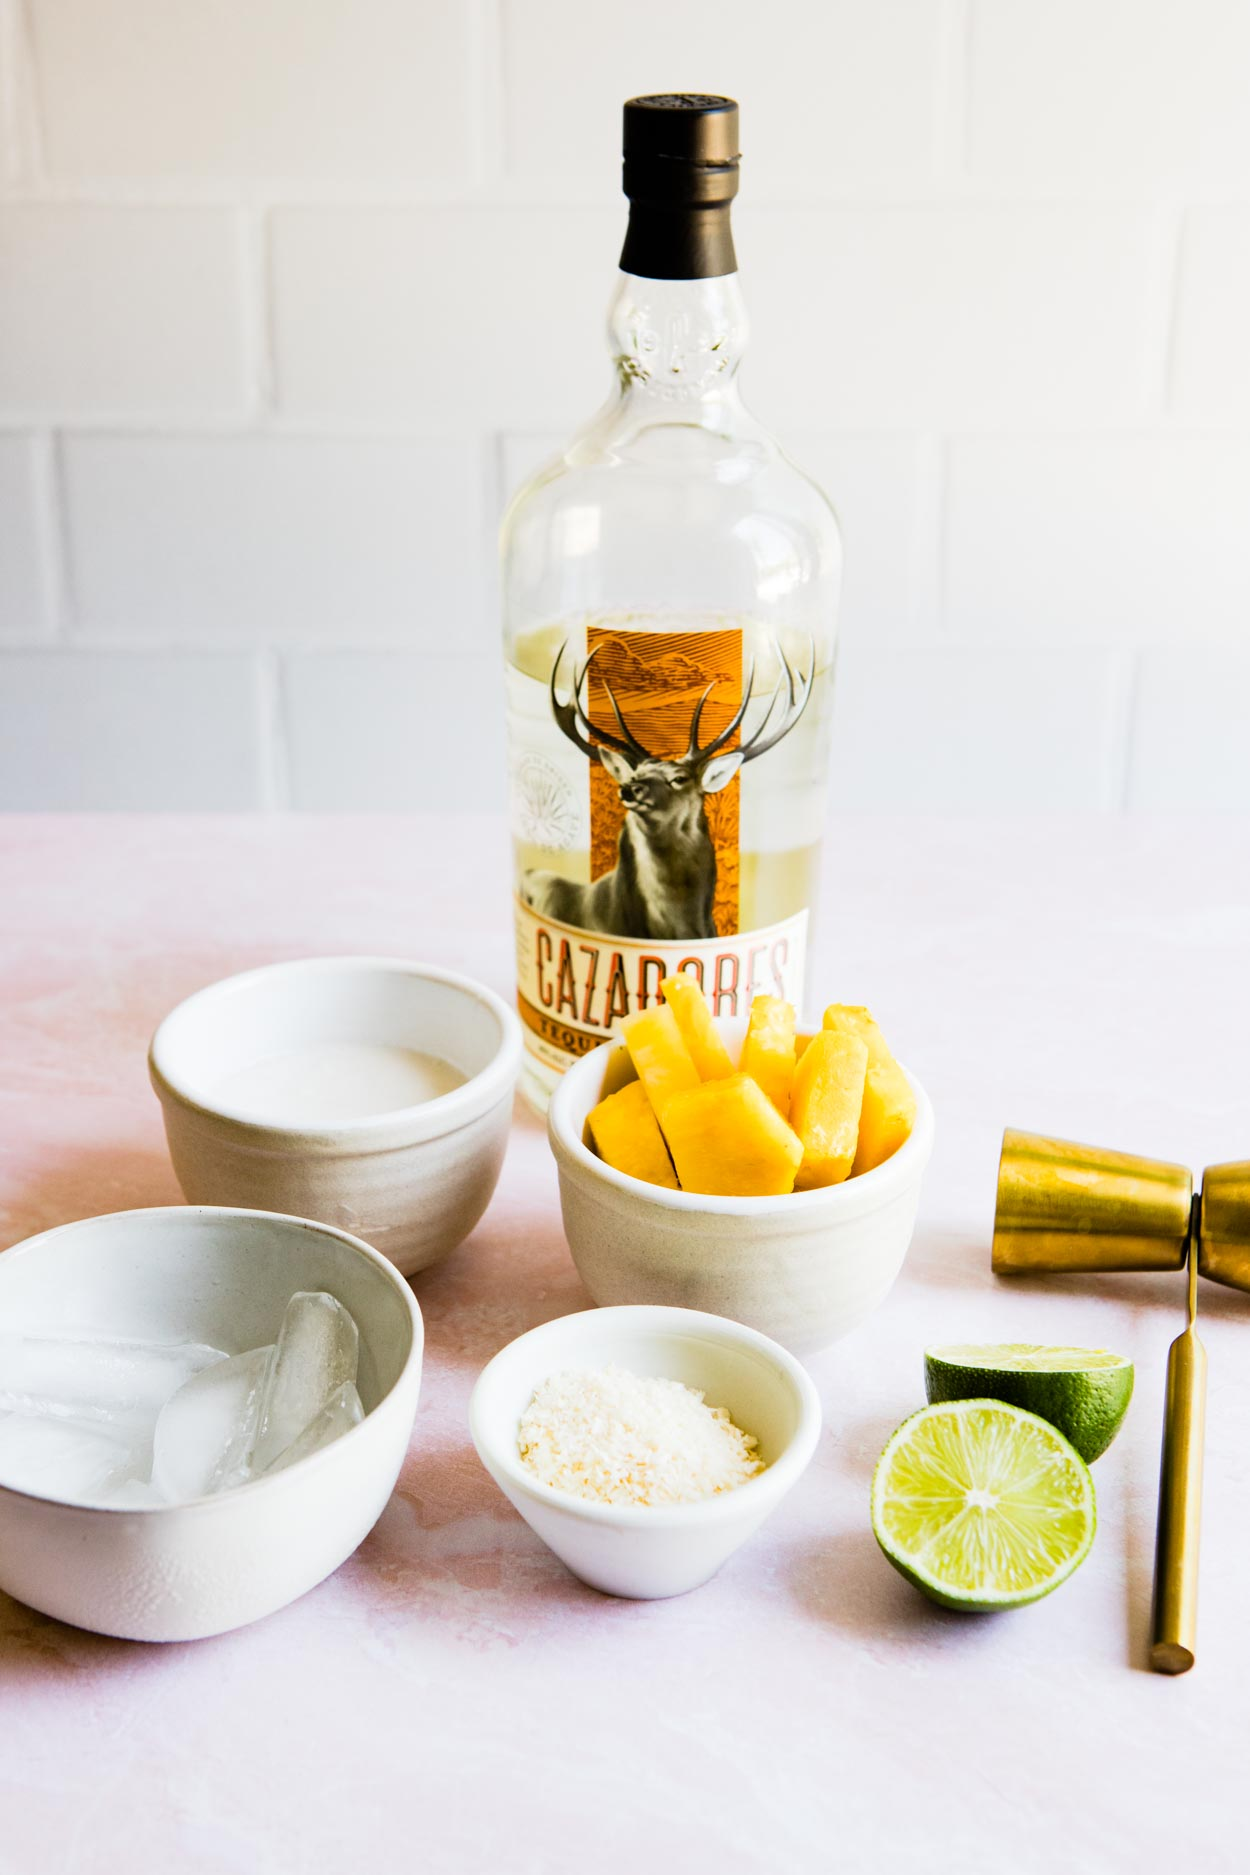 Cazadores tequila and ingredients to make pineapple margarita